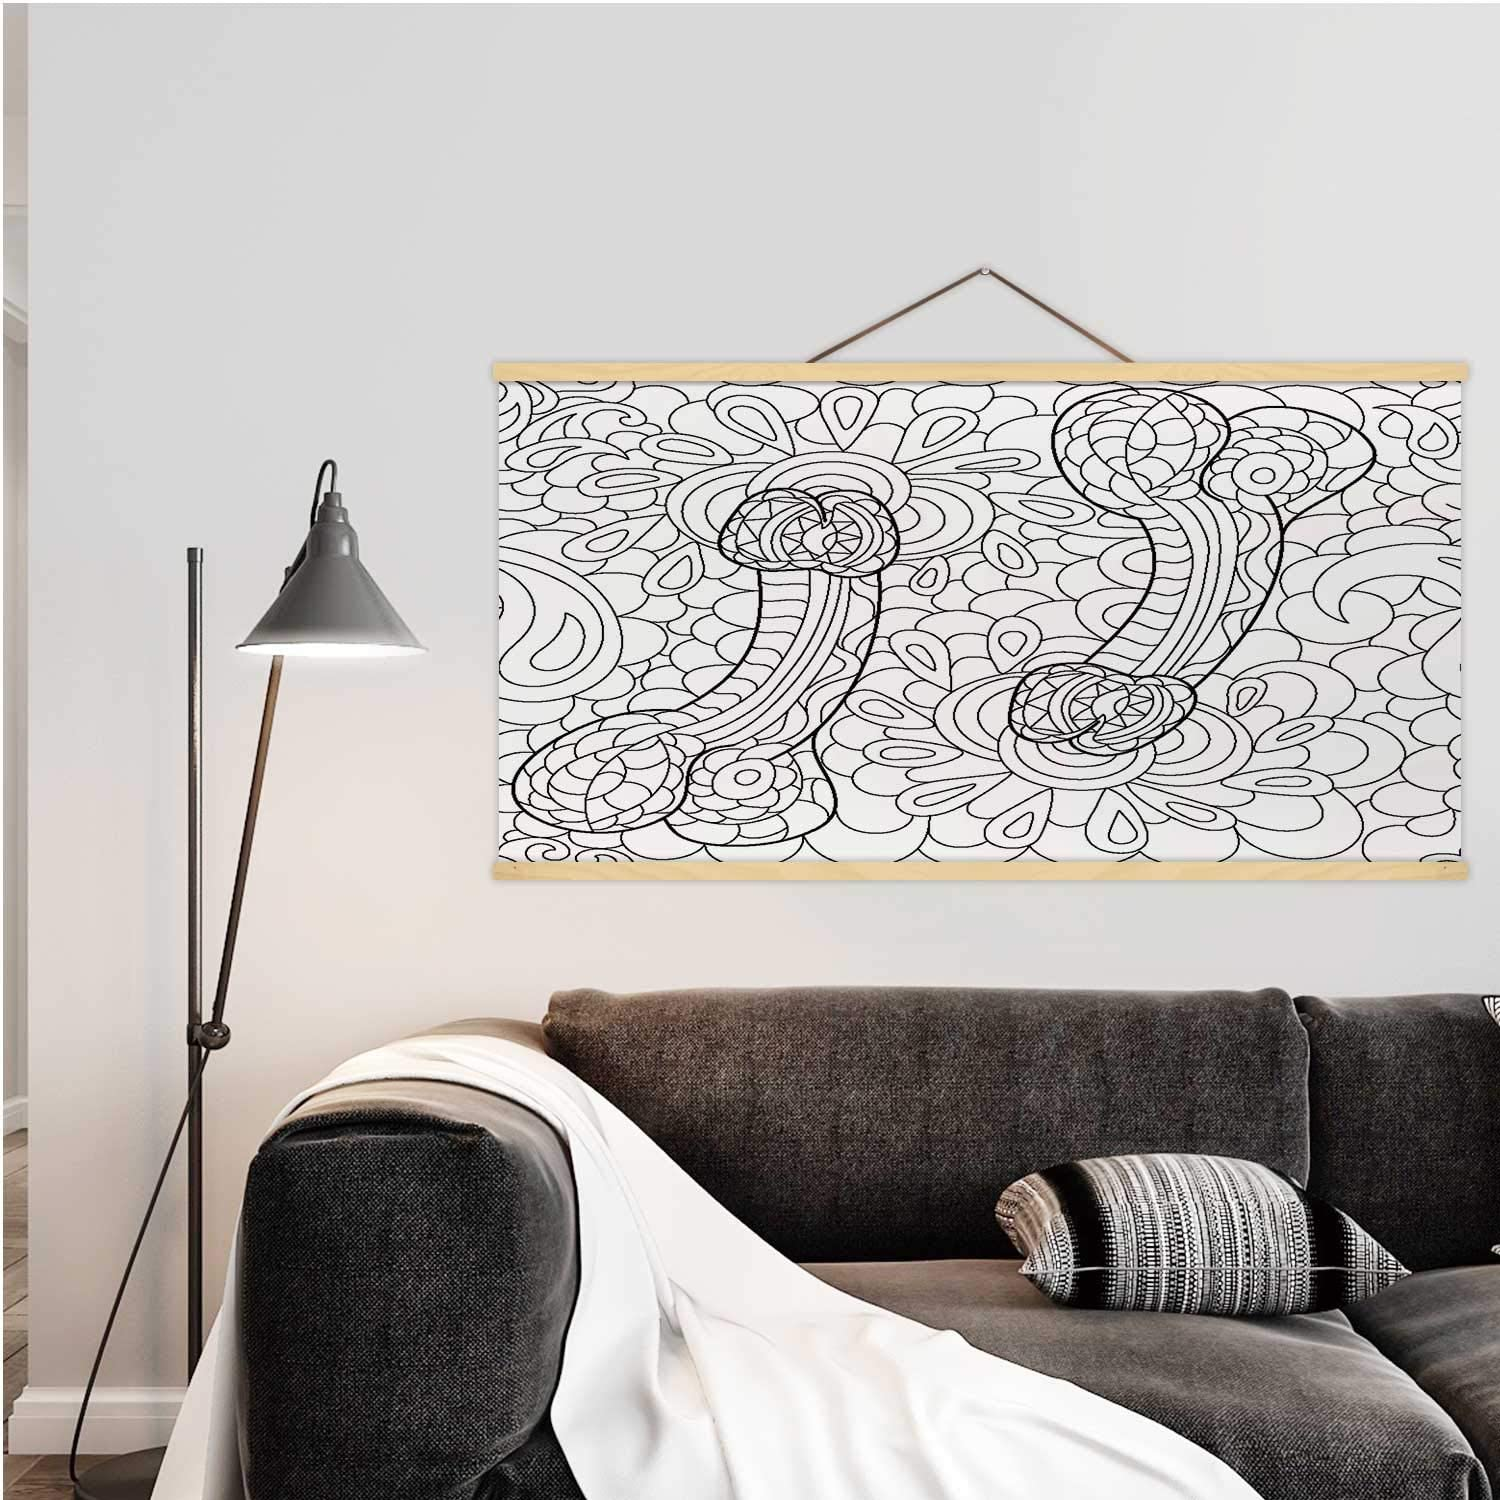 Penis pattern for adults.Anti stress colorful decorative element.Seamless pattern.Hand drawn intim or sex shop isolated. illustration Penis,Magnet Print Posters Medicine for Wall 24W x 12H